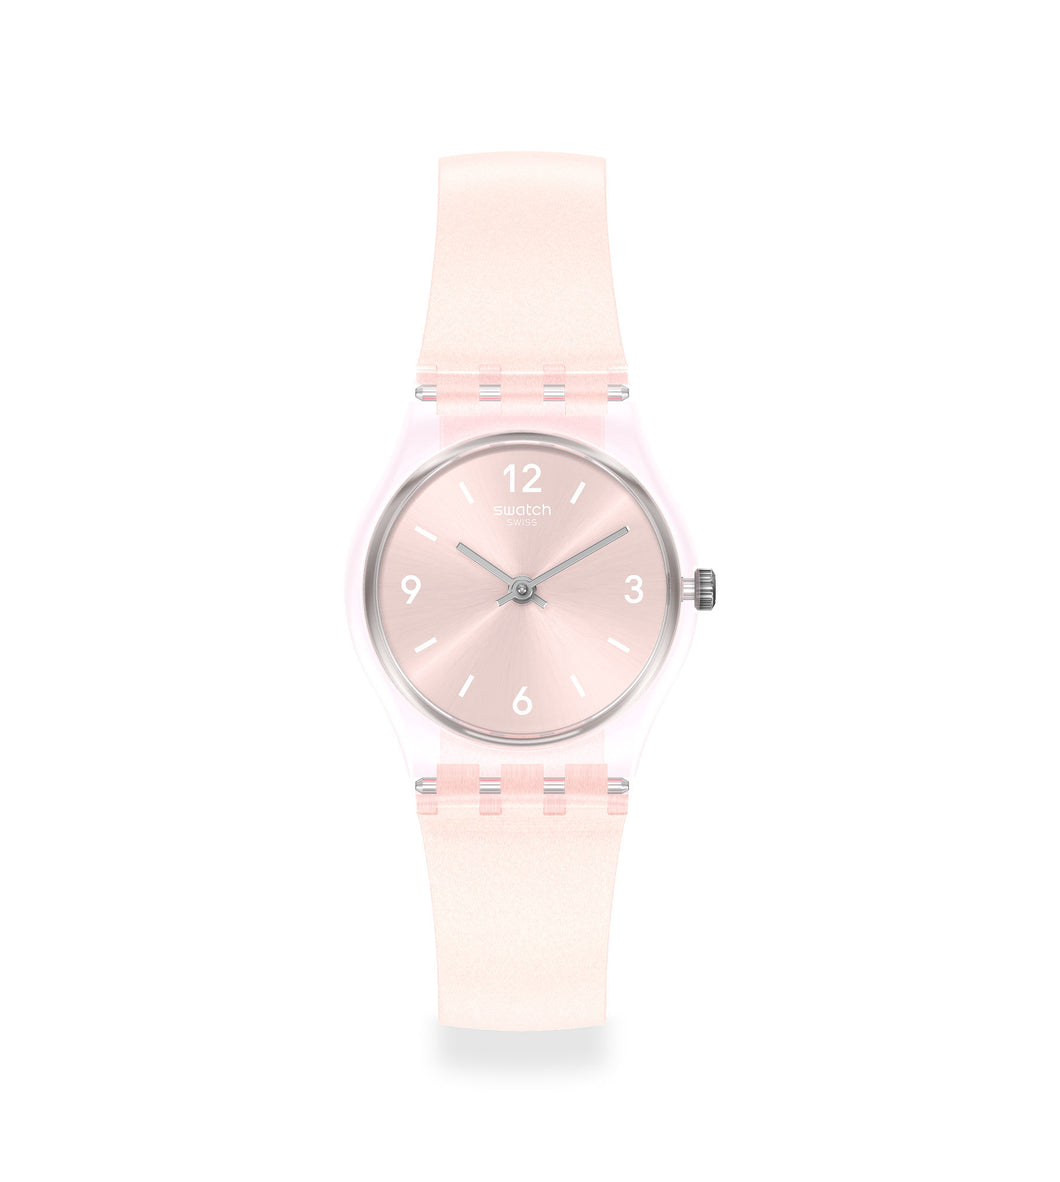 Swatch Fairy Candy LP159